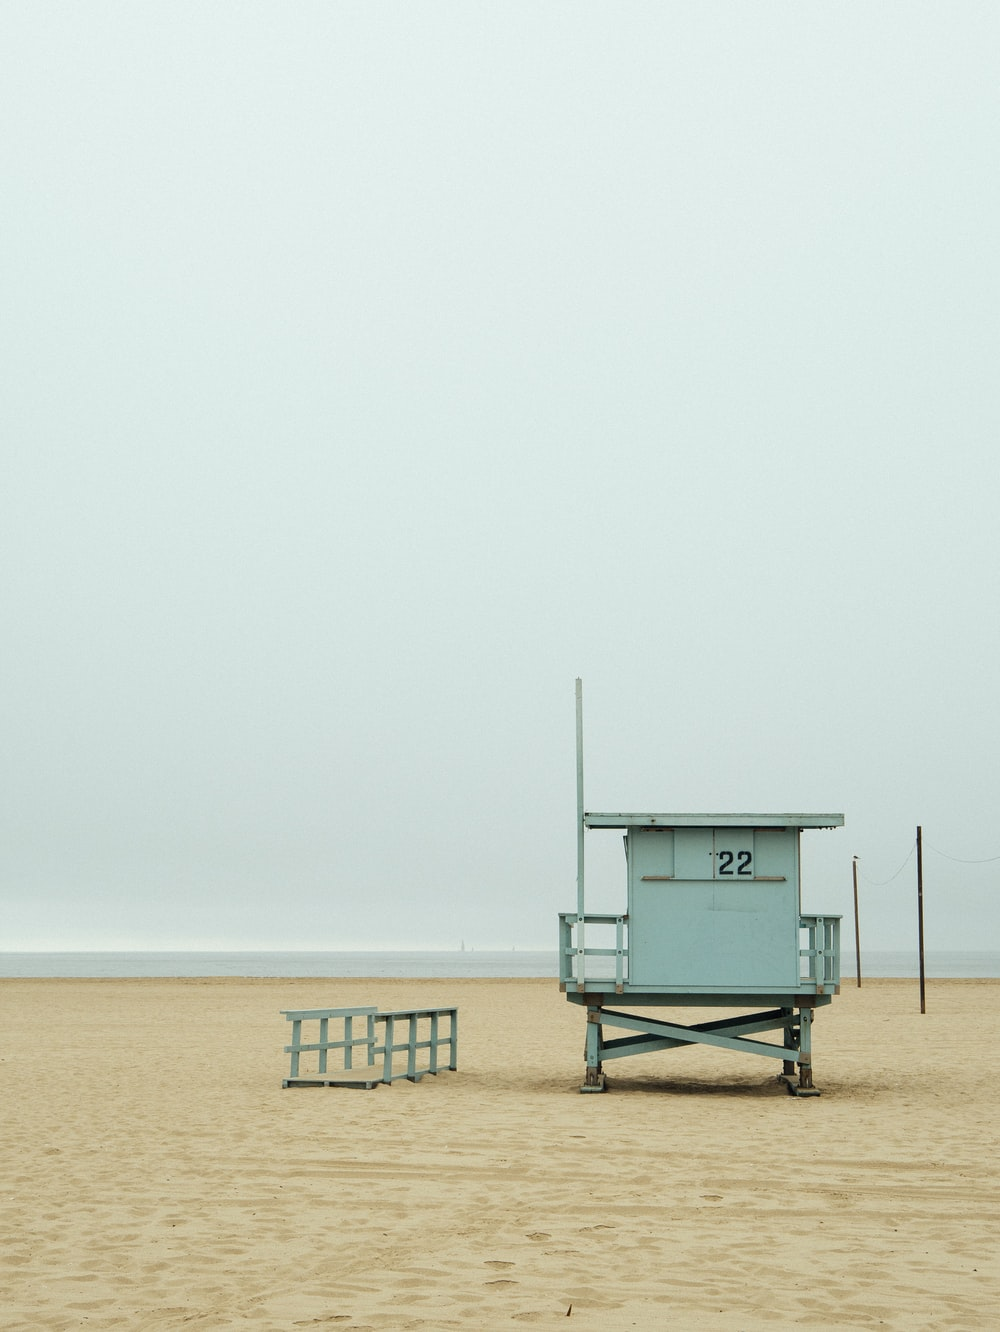 teal lifeguard shed near beach at daytime